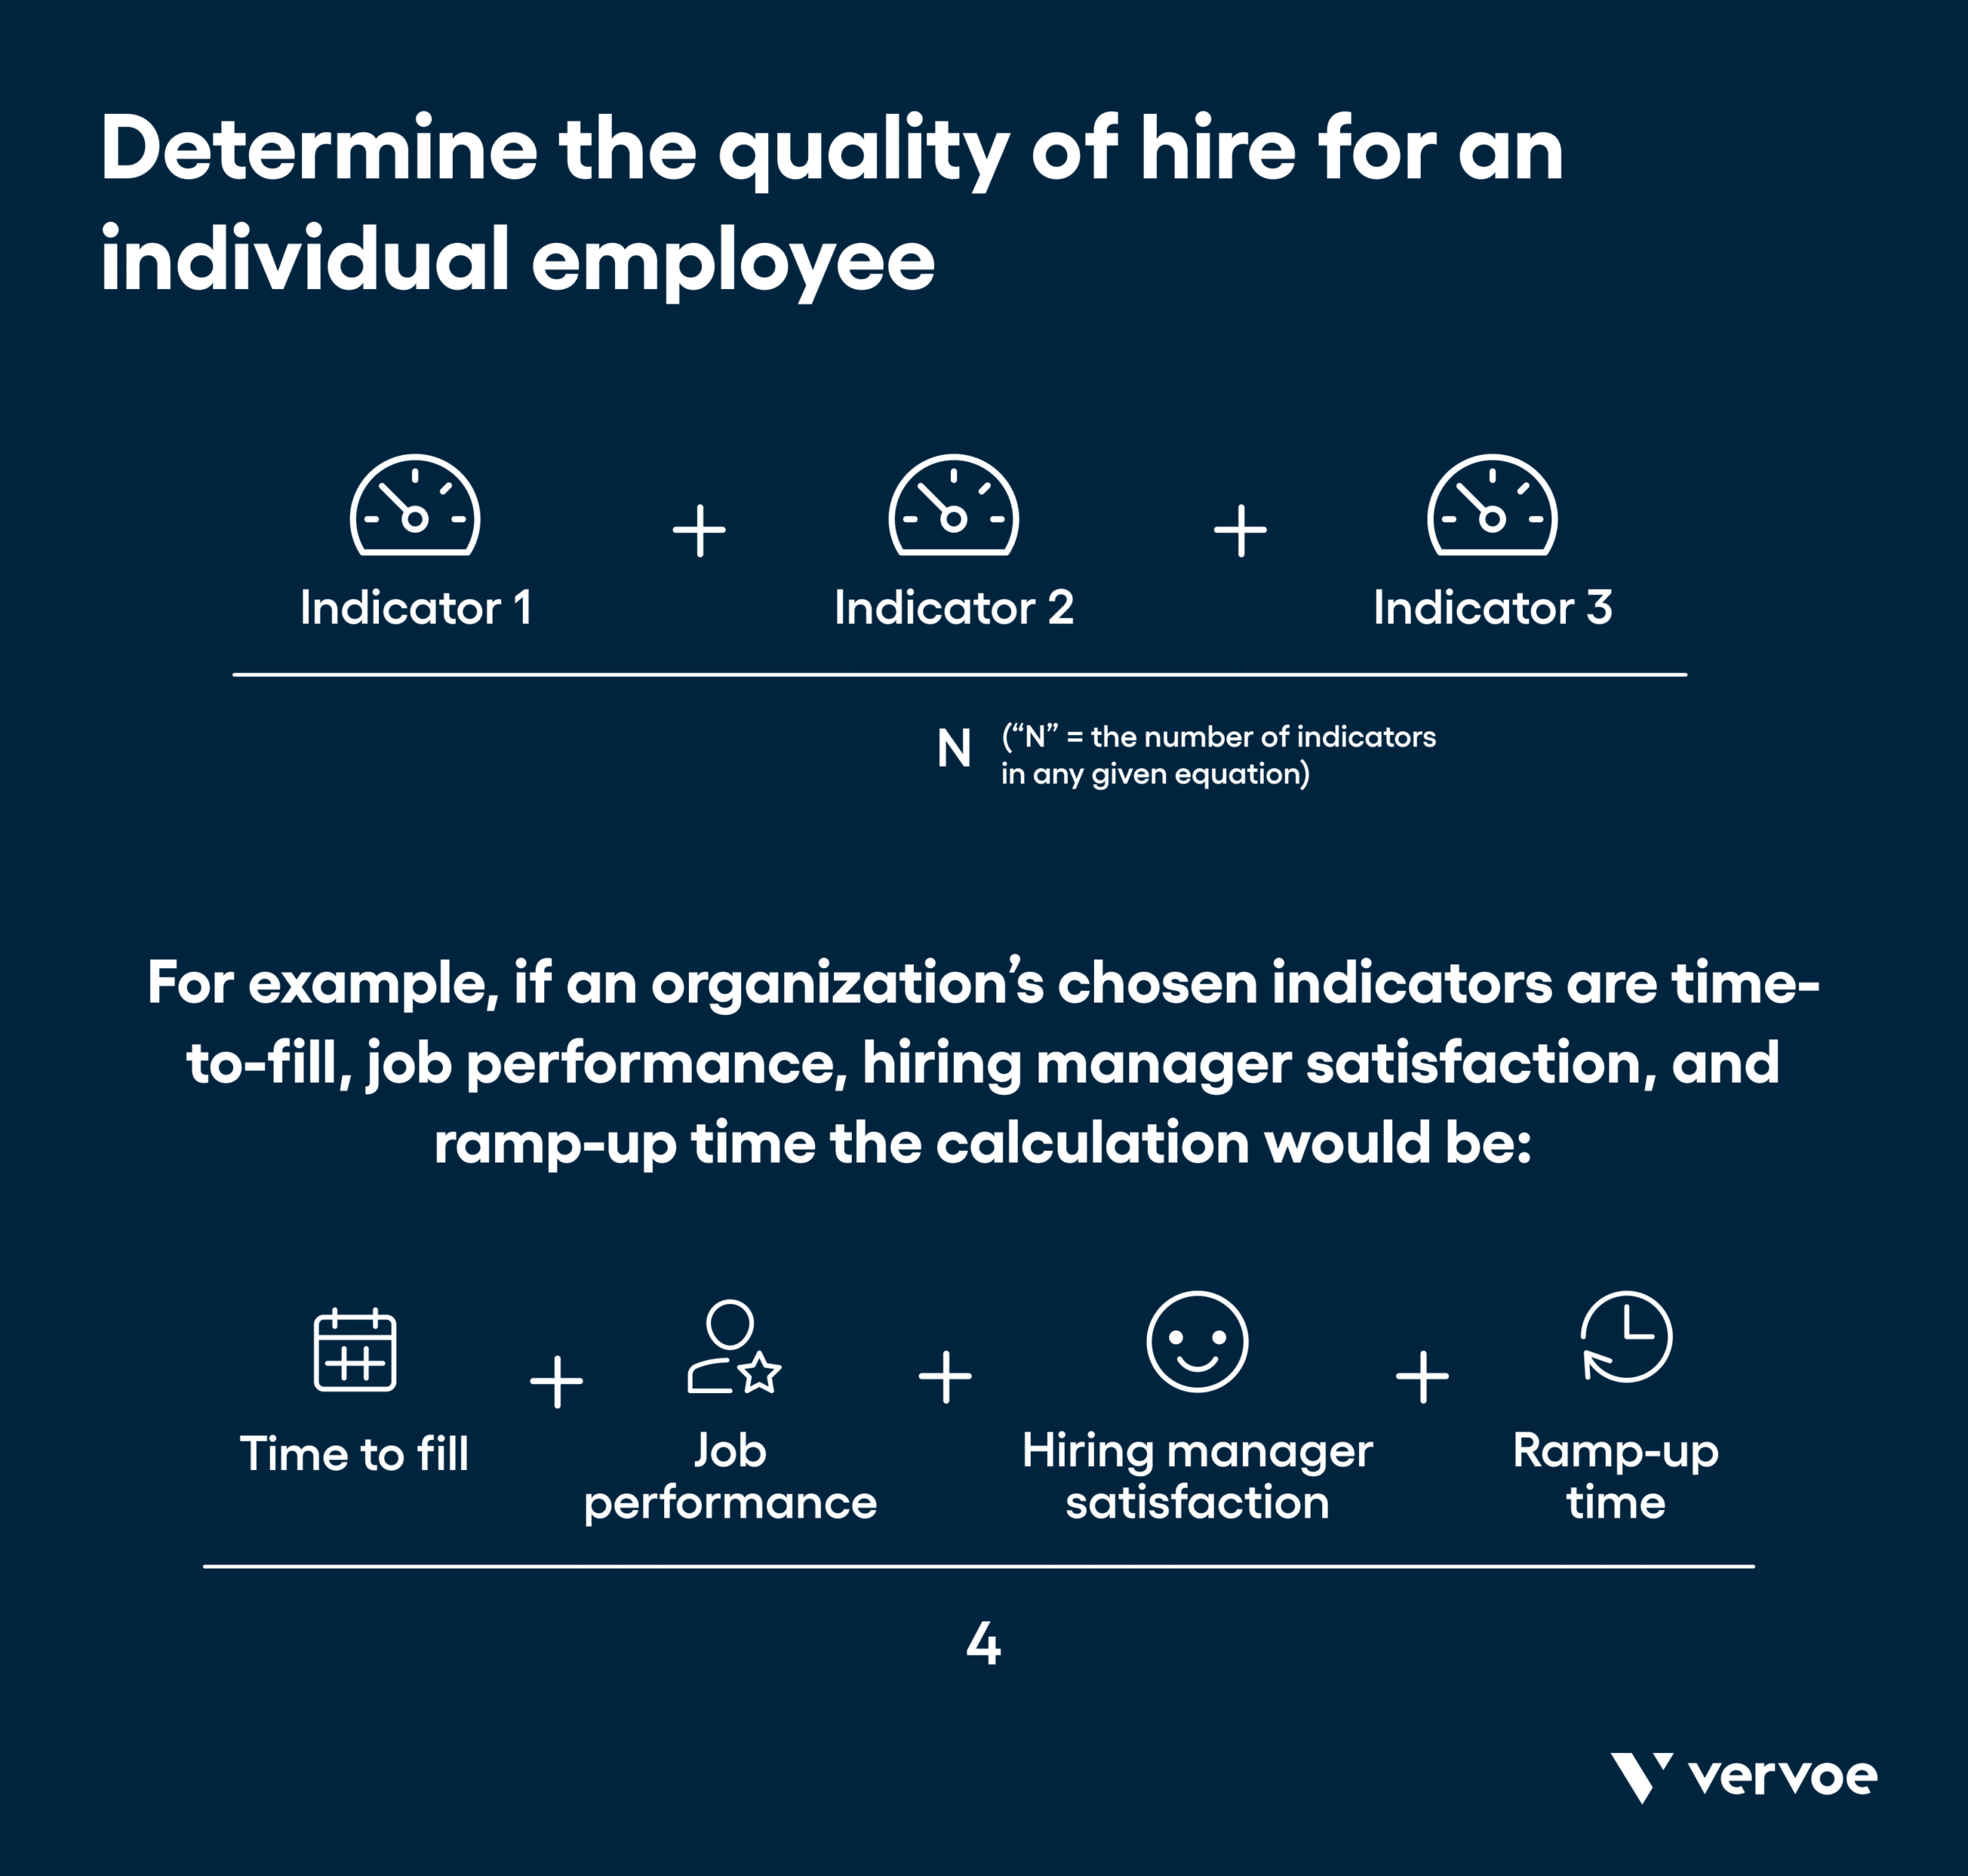 Infographic showing how to calculate quality of hire for an individual employee